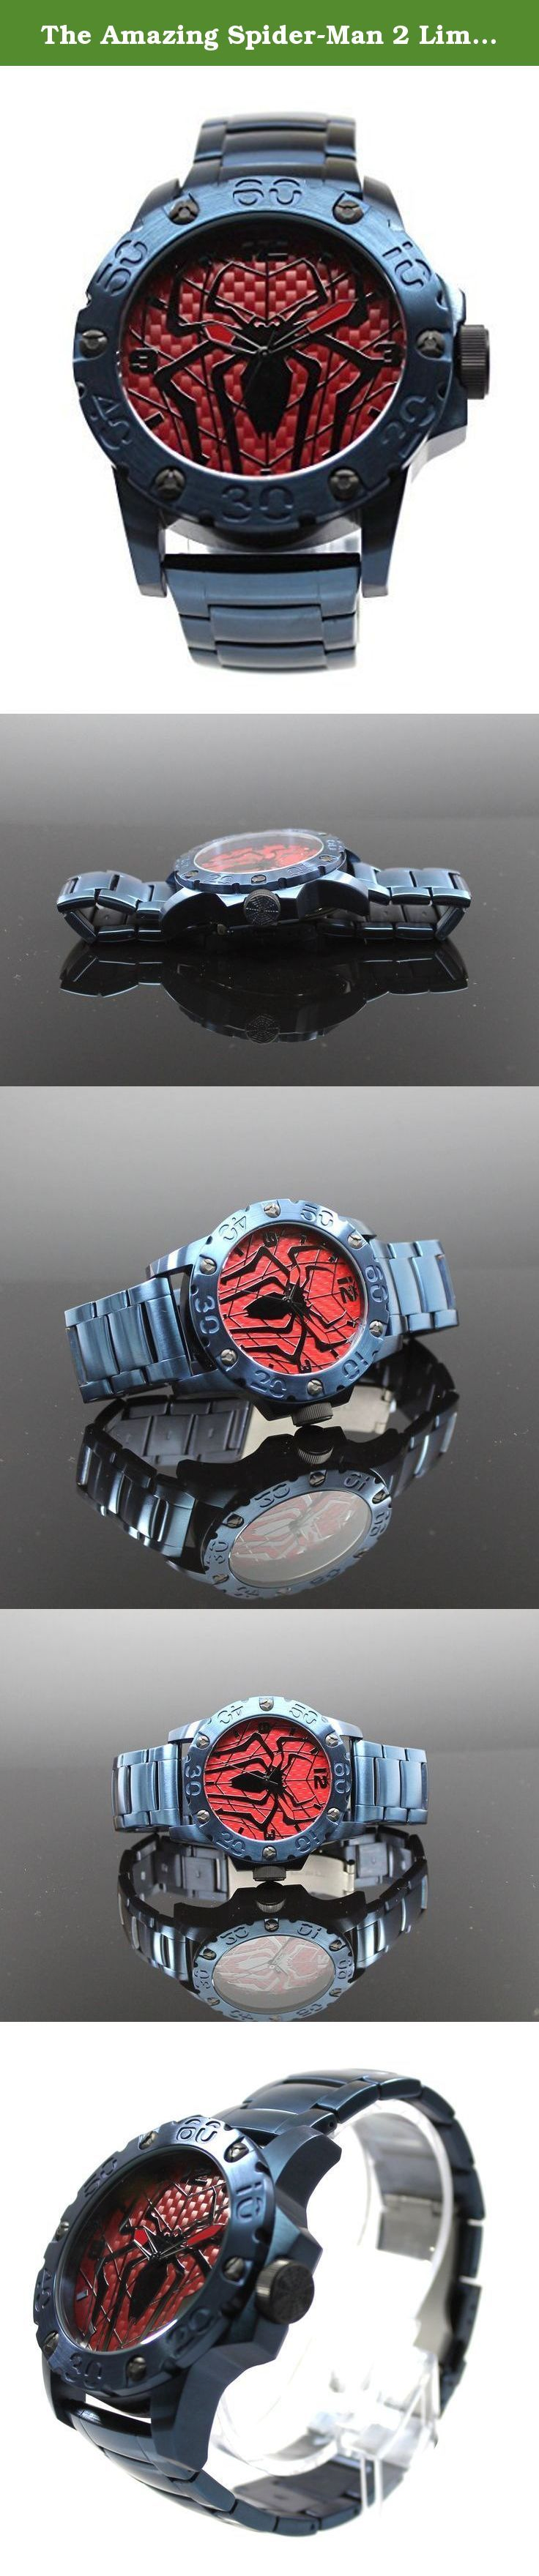 The Amazing Spider-Man 2 Limited Edition Exclusive Watch (Spiderman SPM2254). This watch is as amazing as the web slinger himself for it is a true quality time piece perfect for Spidey fans everywhere. Accessorize like Peter Parker with this exclusive Spider-Man themed watch that features a blue band and a massive case. The dial of the watch is inspired by the texture of Spiderman's suit and logo in the latest Spidey movie. Band is about 8.75 inches long and has a fold-over clasp with the...